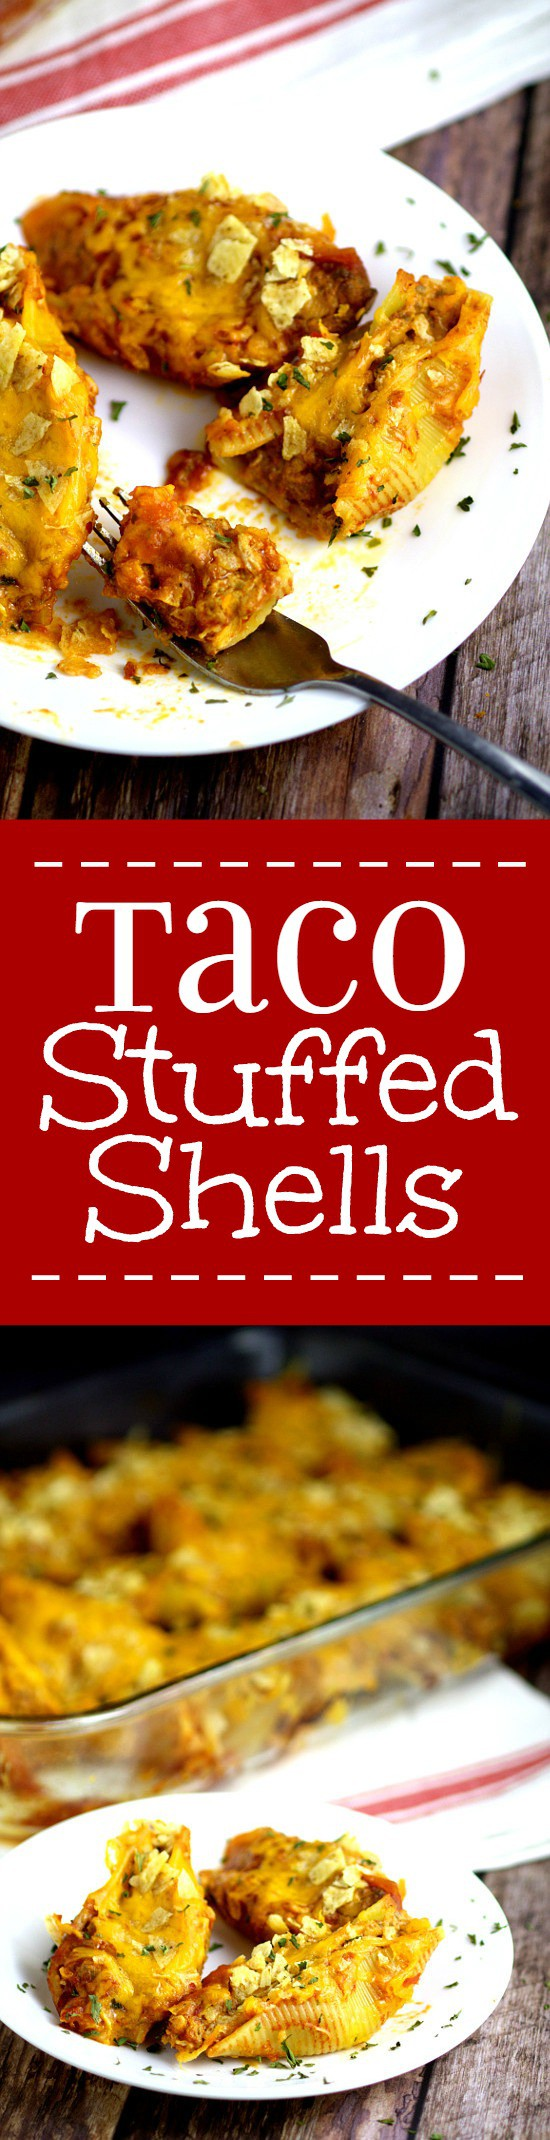 Taco Stuffed Shells Recipe is perfect for a family dinner night! A ...